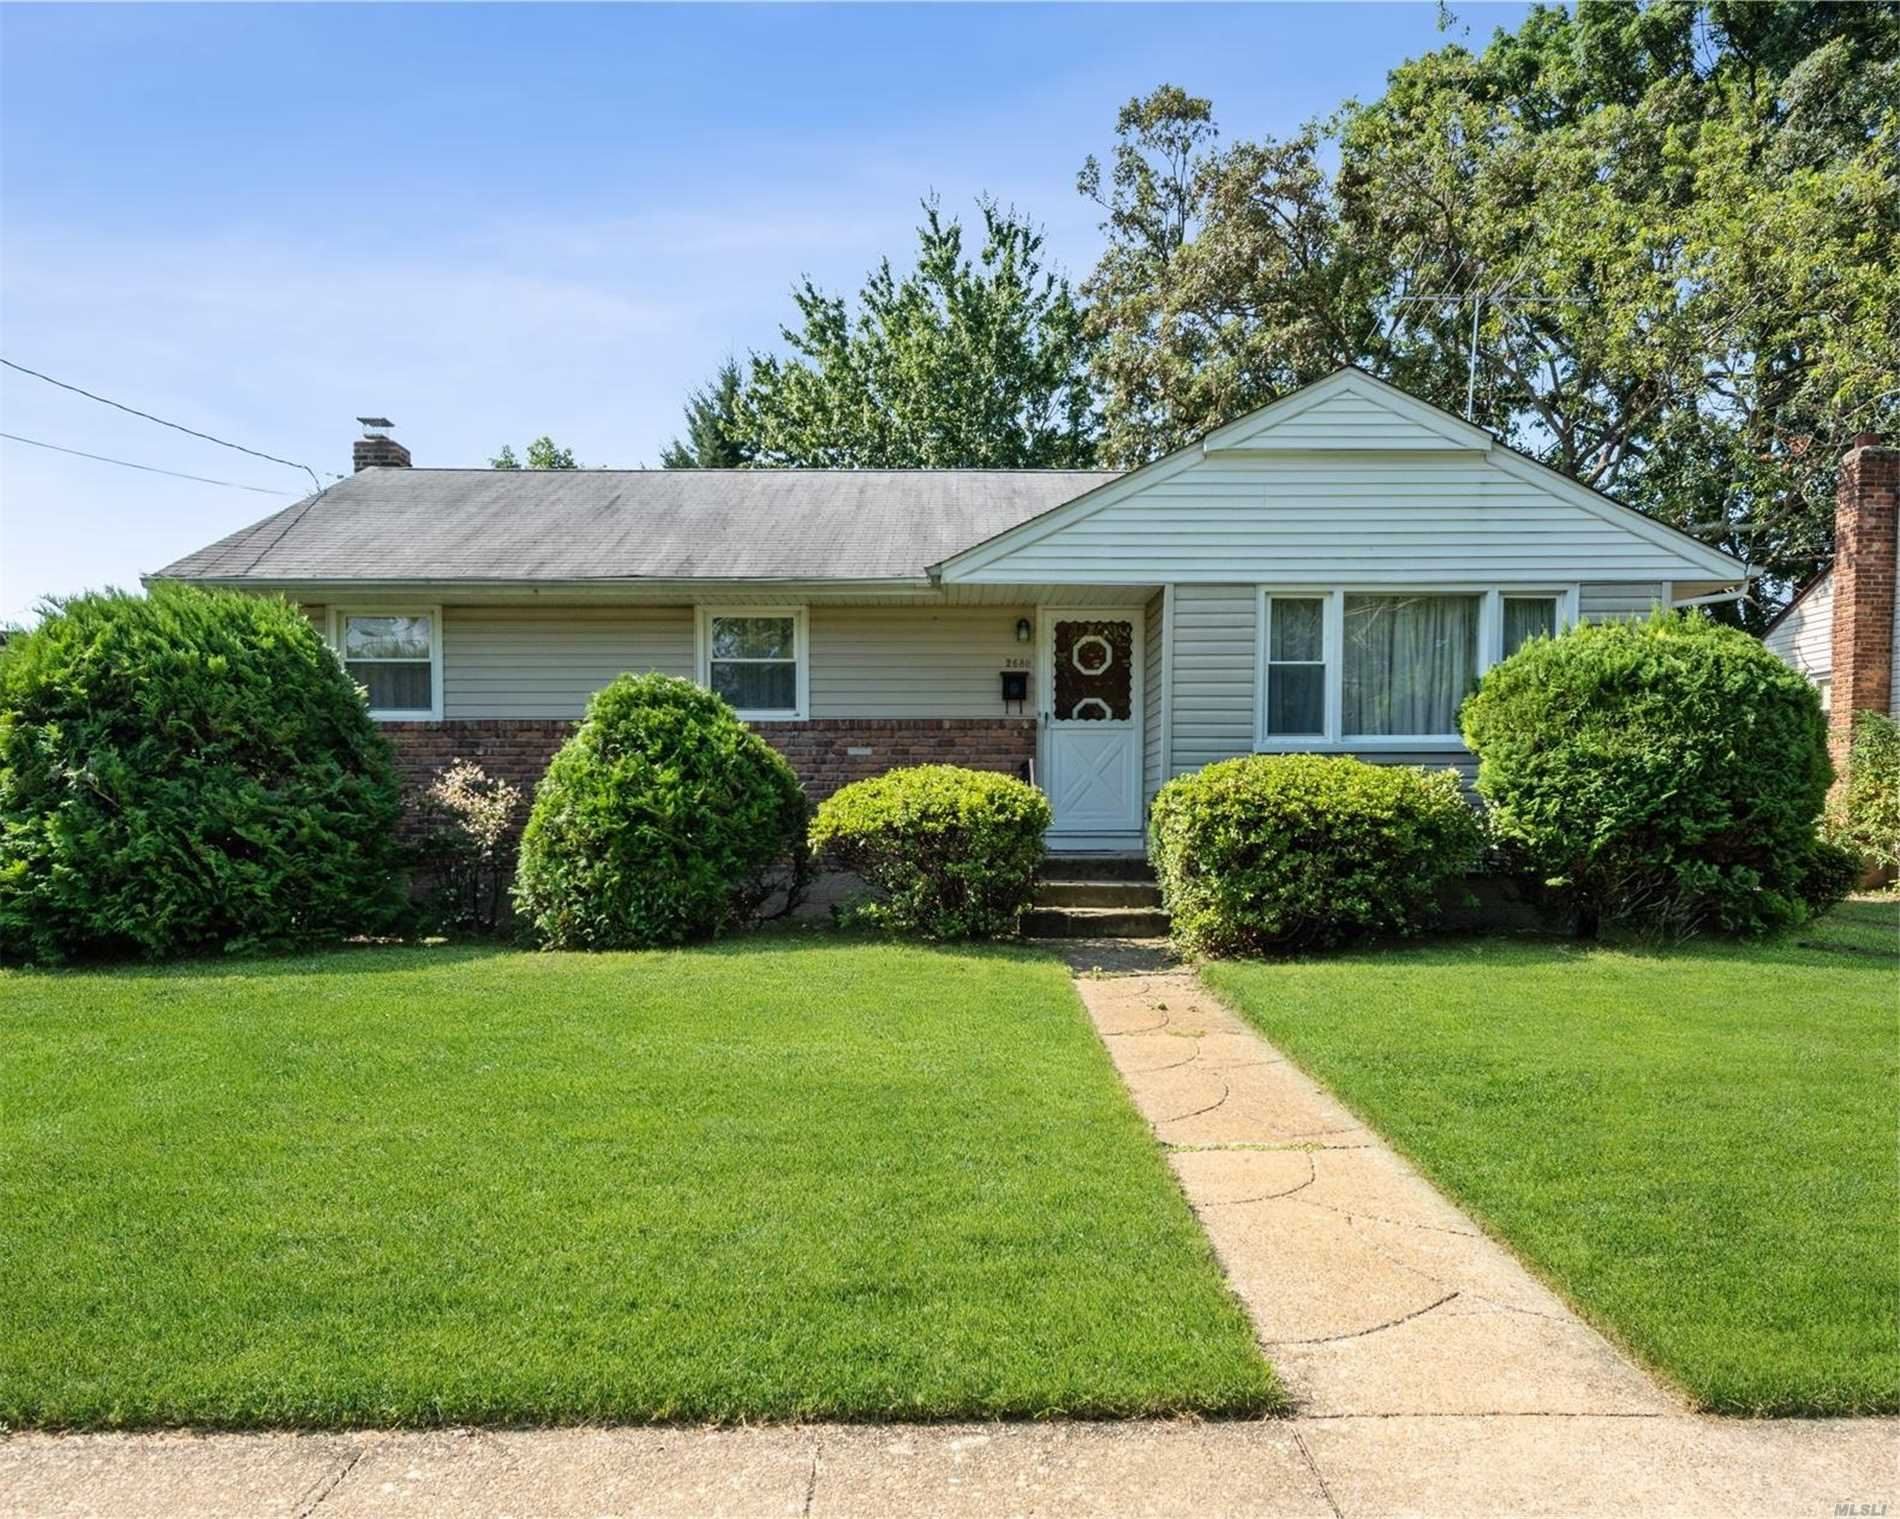 2680 Janet Ave, Bellmore, NY 11710 - MLS#: 3235231